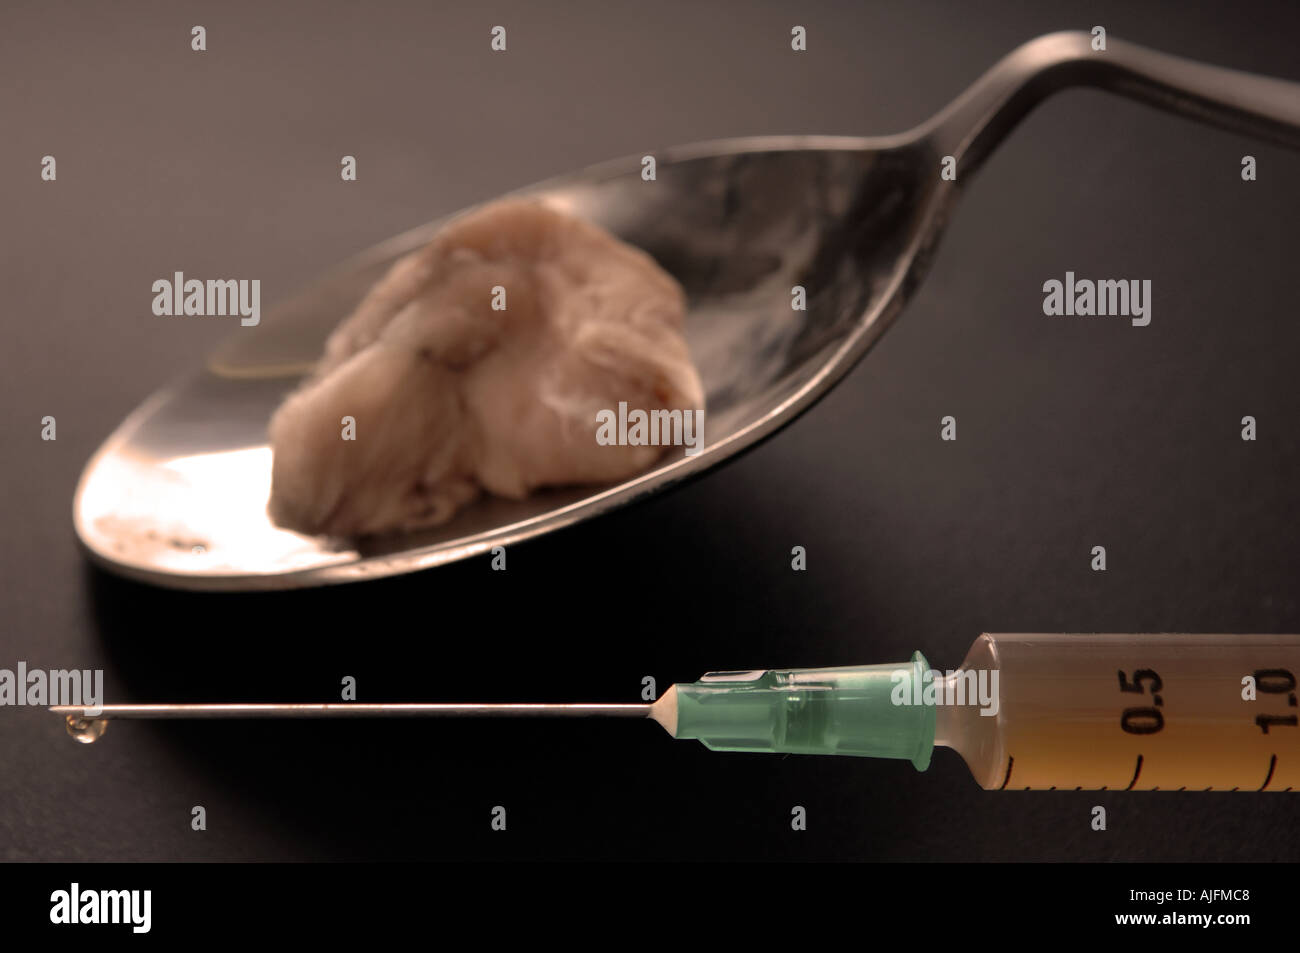 heroin in a hypodermic needle after being cooked on a spoon - Stock Image